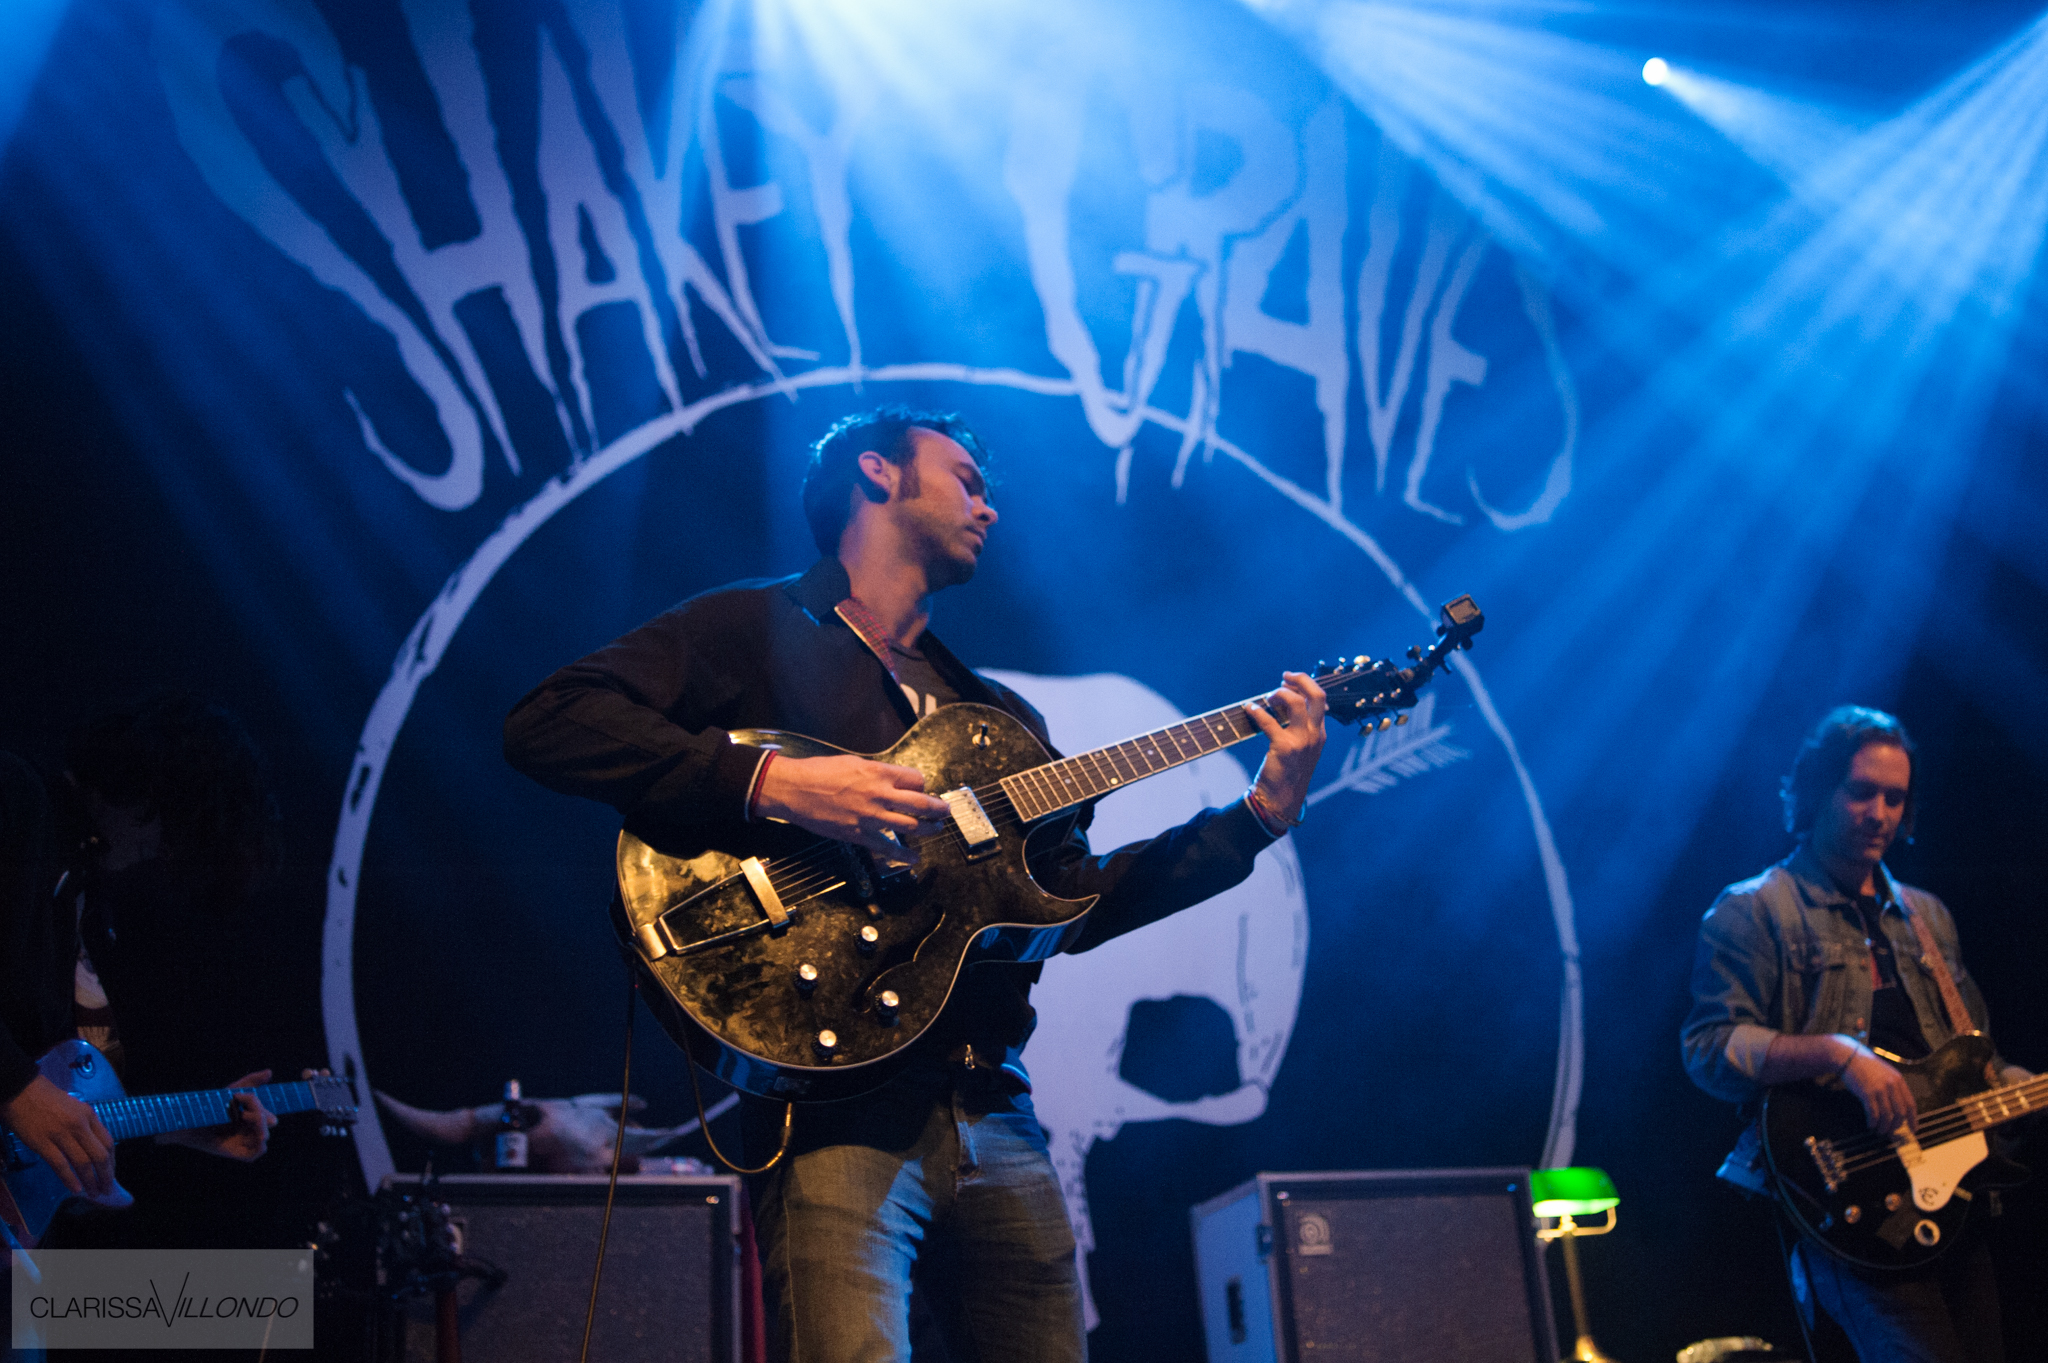 Shakey Graves // Photo by Clarissa Villondo